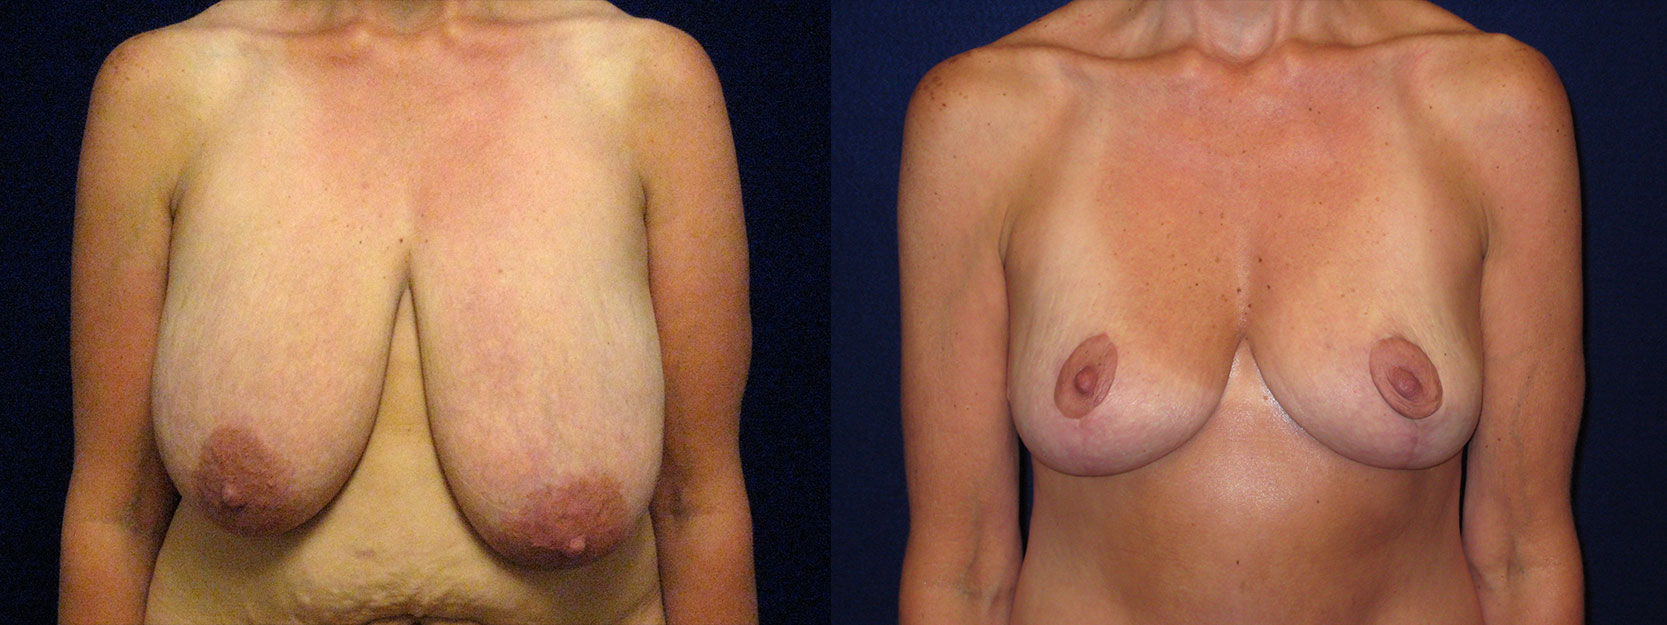 Frontal View - Breast Lift Reduction